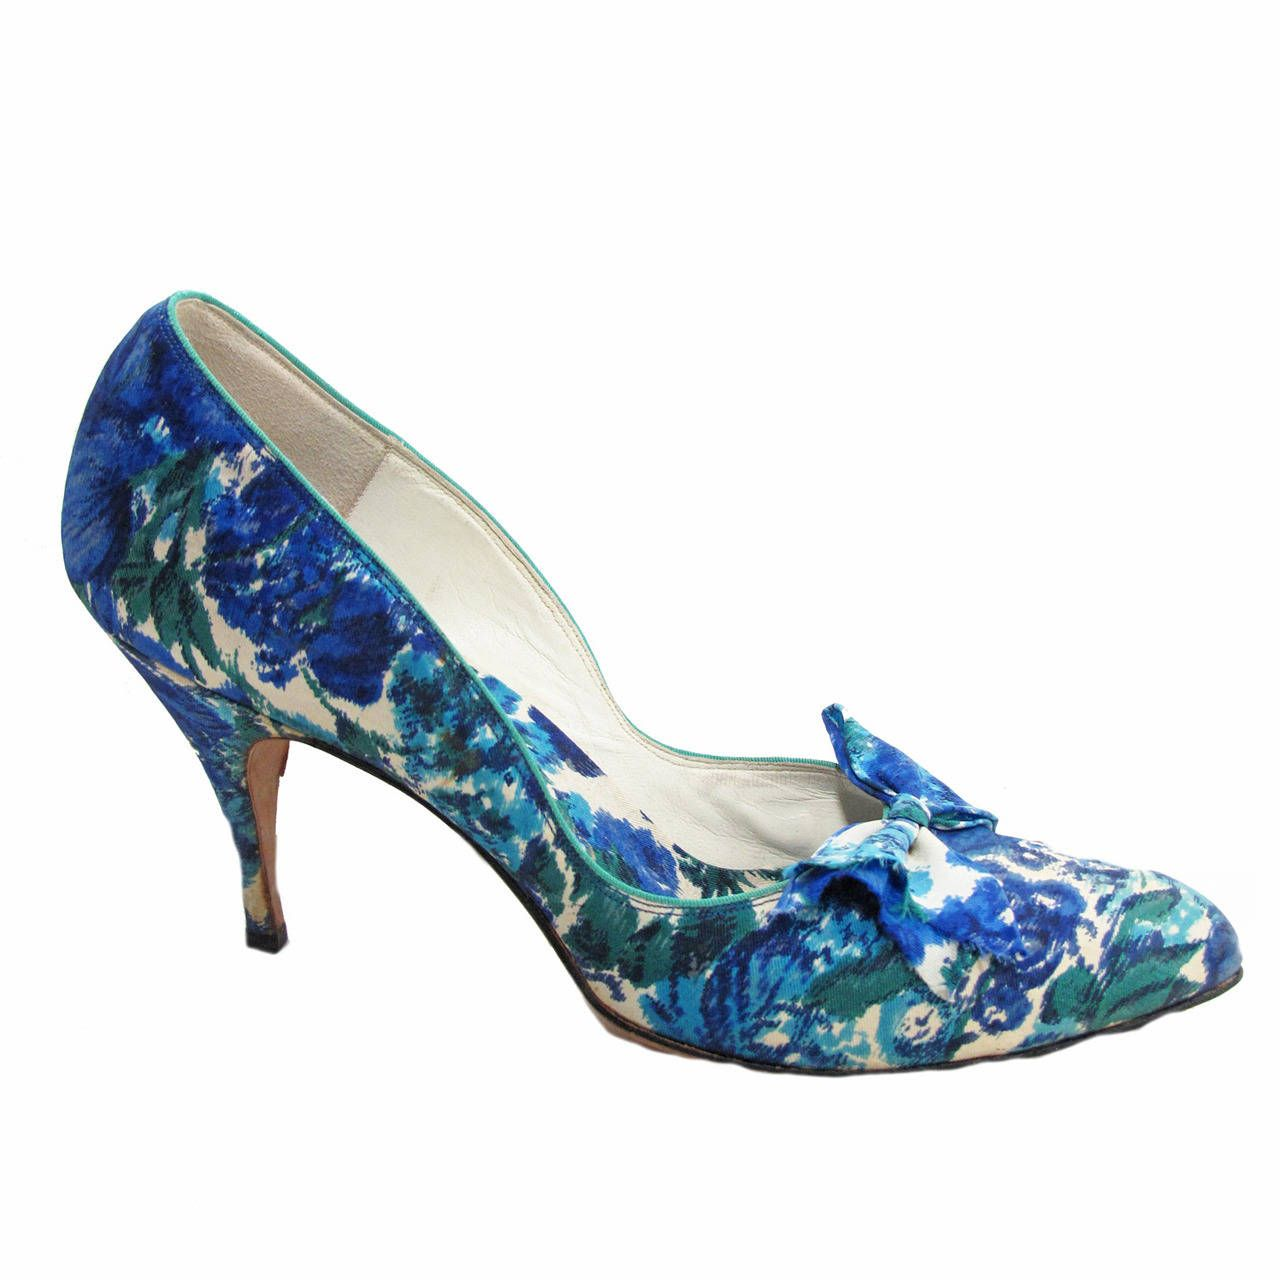 22aba7ca8 1950s Christian Dior Blue Floral Heels | See more vintage Shoes at https://